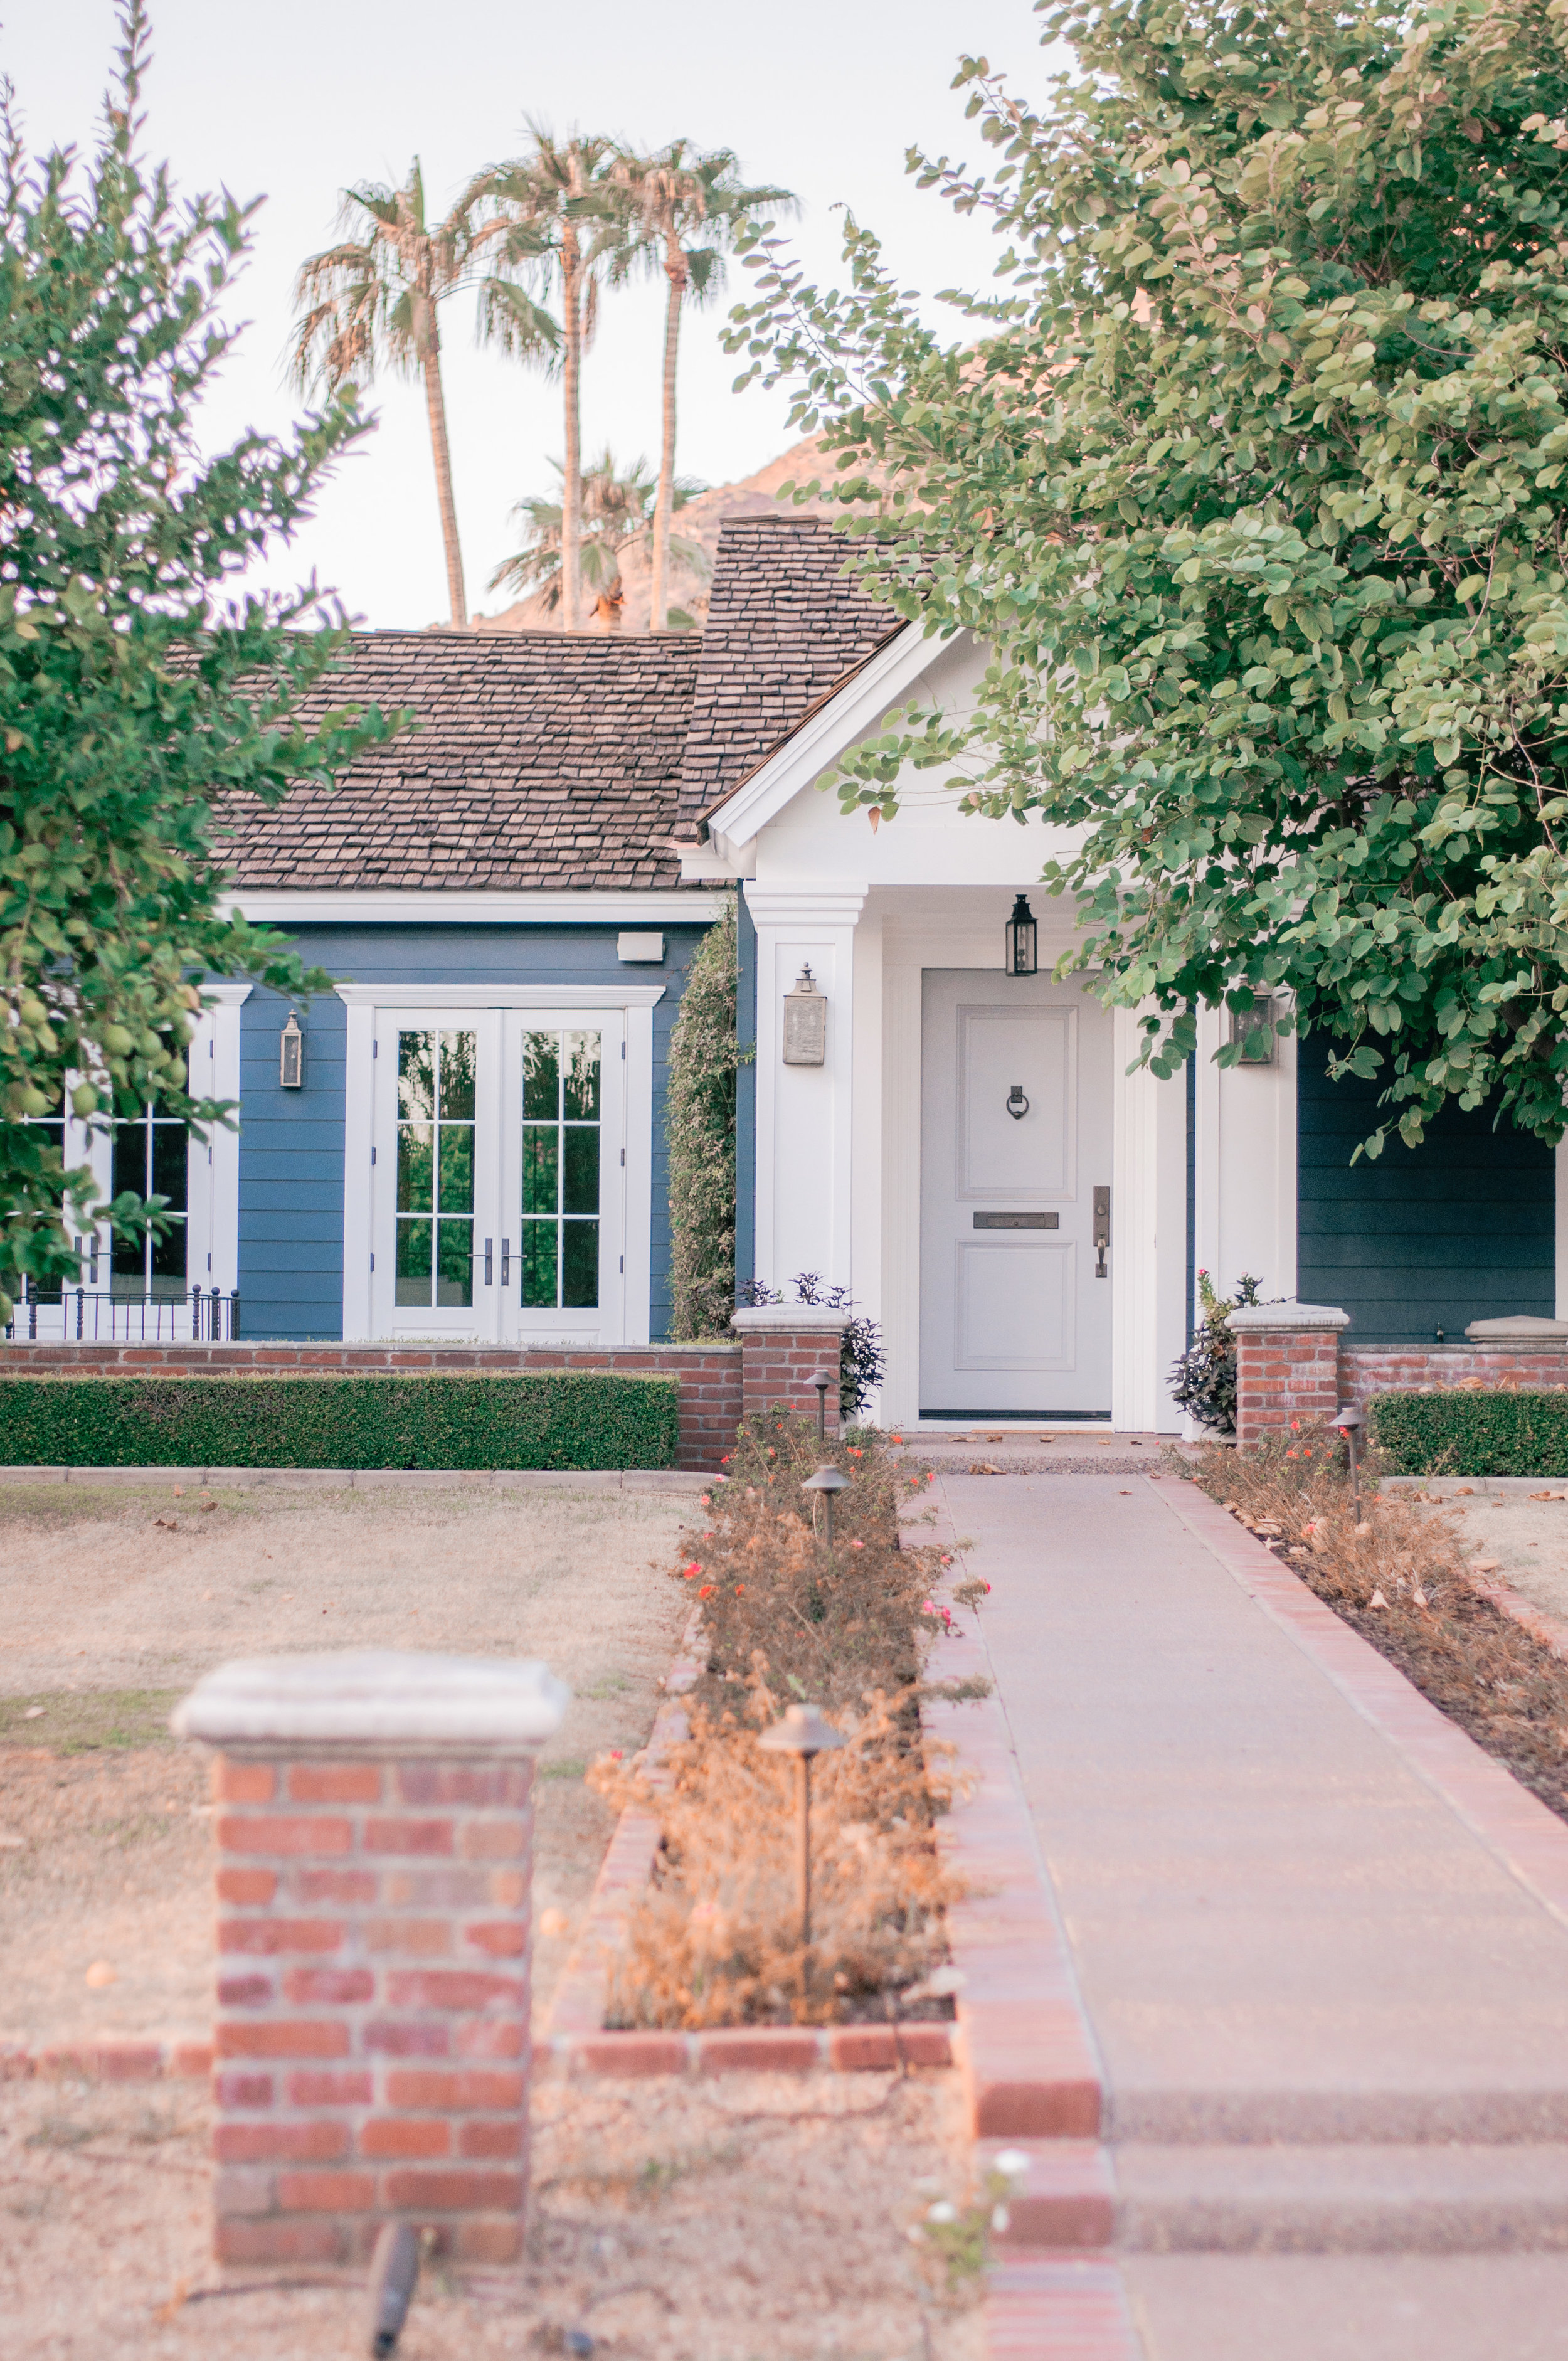 The beautiful, unique homes of the Arcadia neighborhood in Phoenix